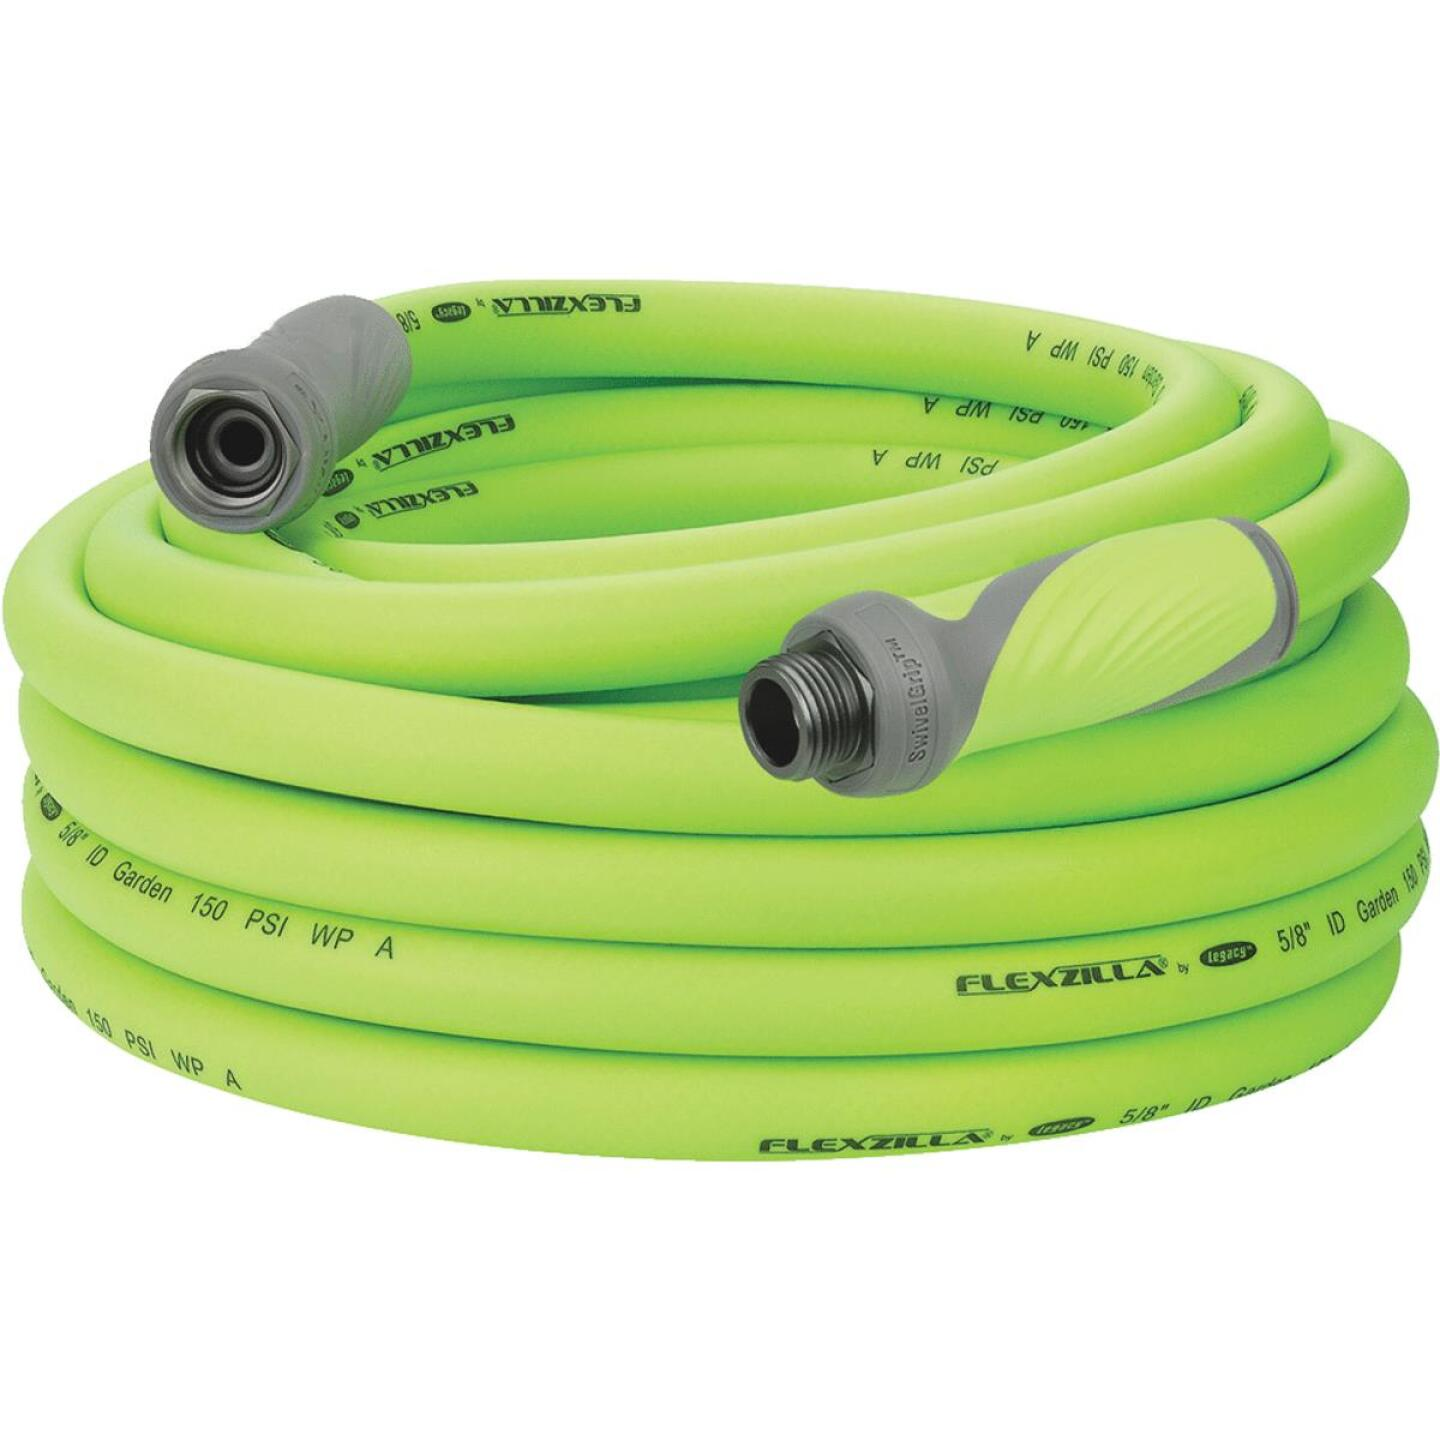 Flexzilla 5/8 In. Dia. x 50 Ft. L. Drinking Water Safe Garden Hose with SwivelGrip Connections Image 1